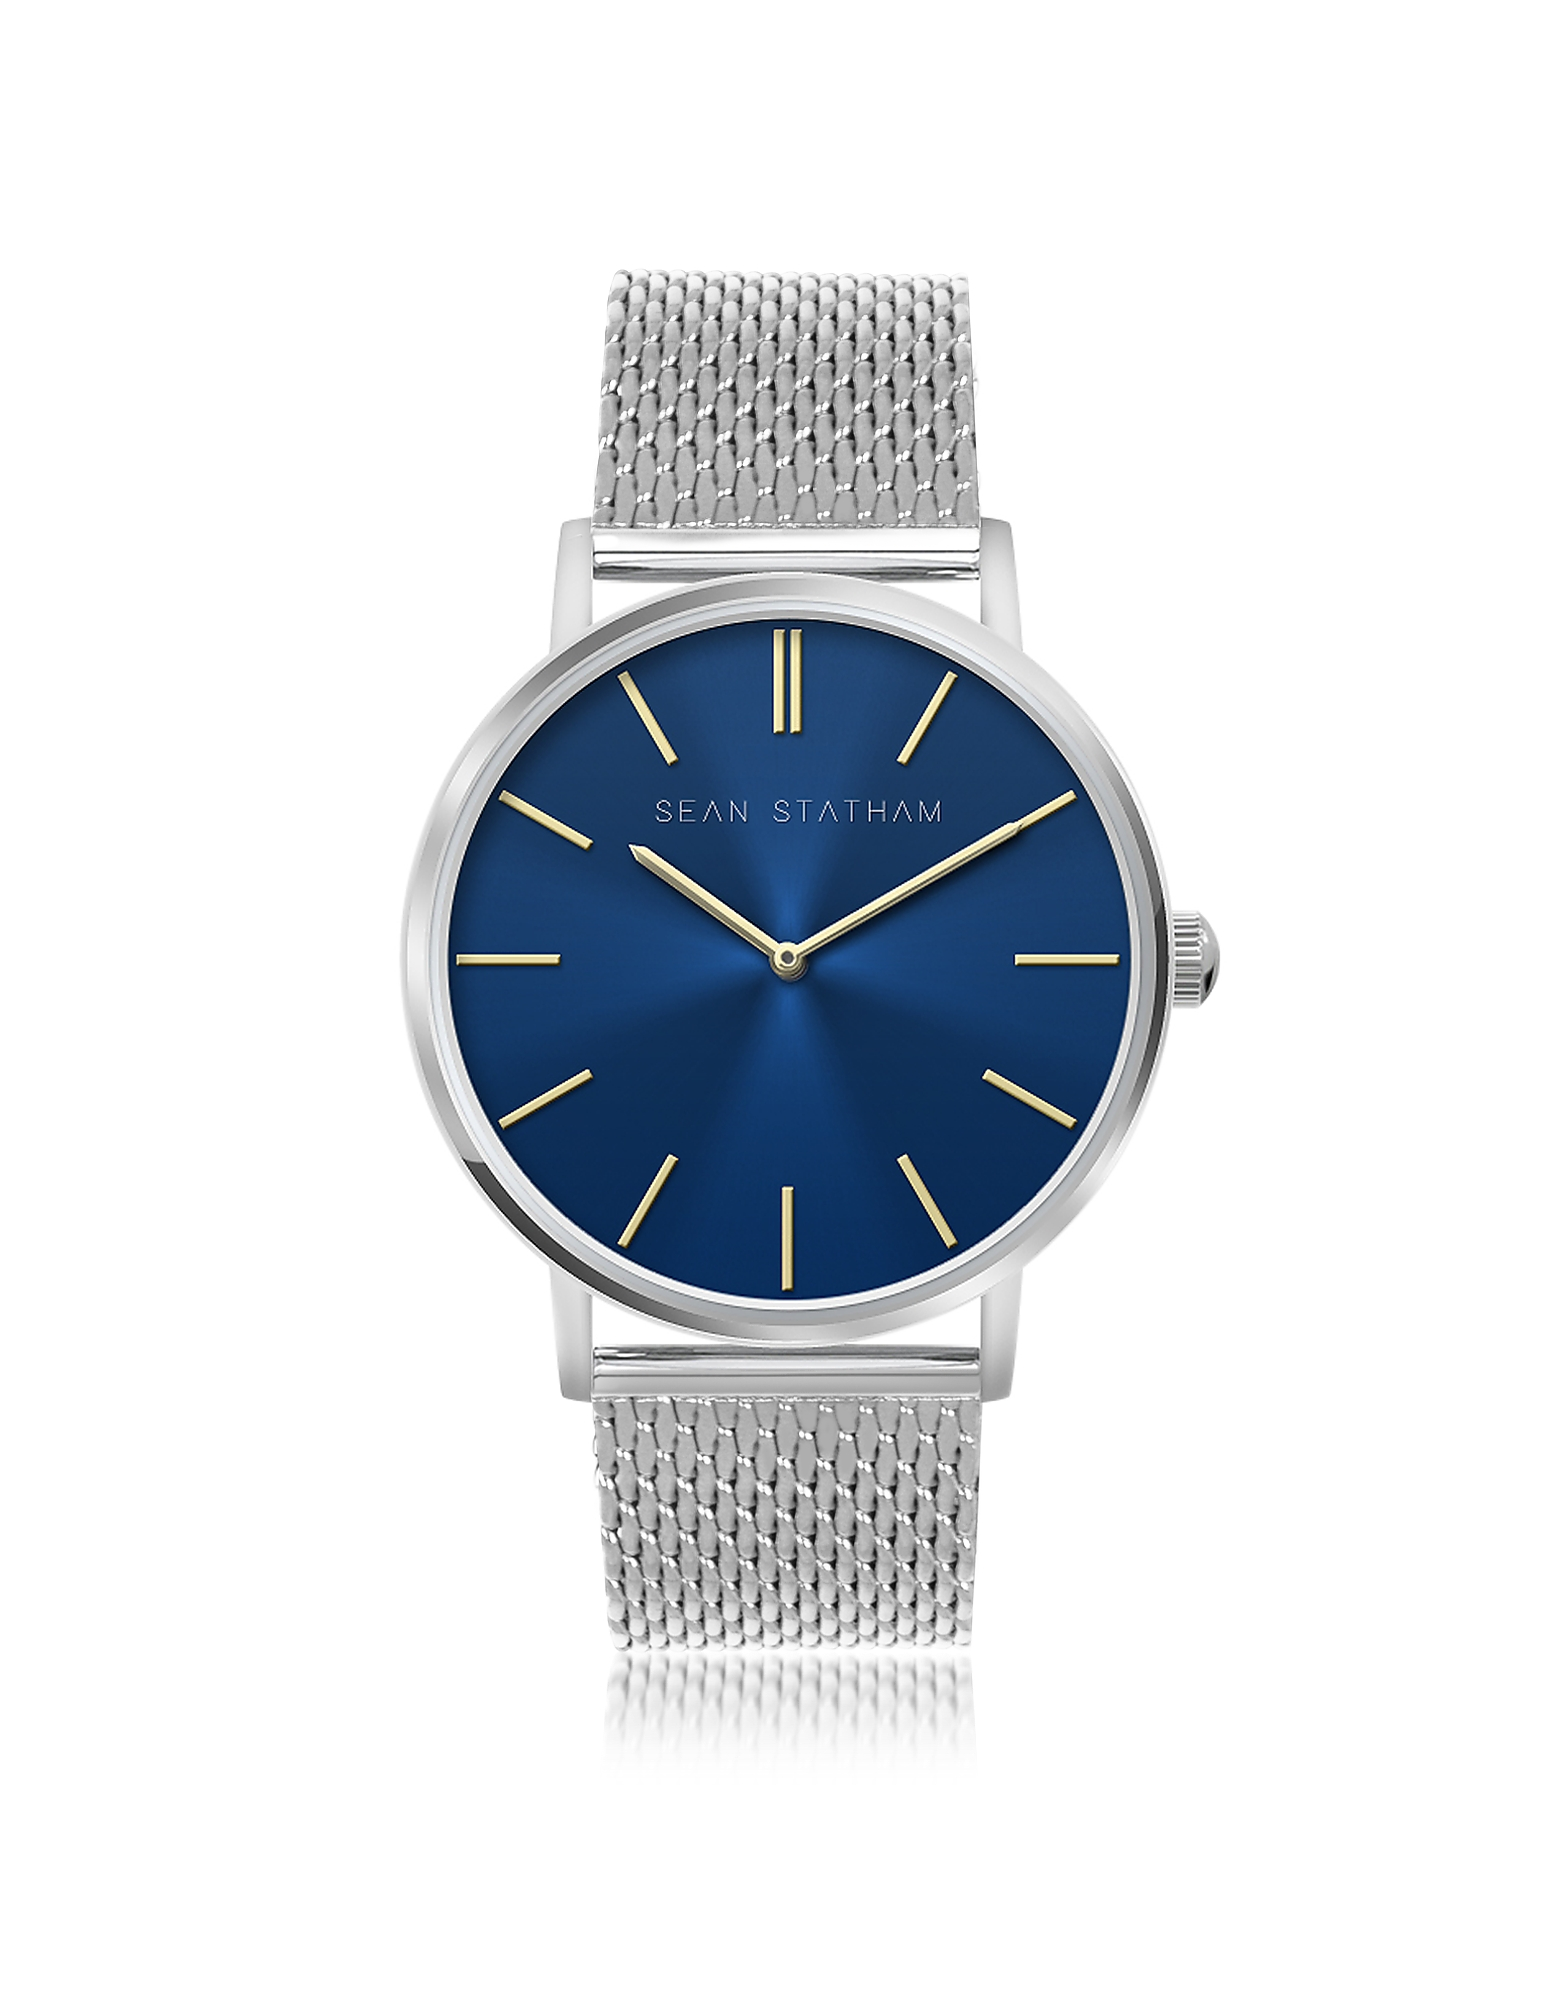 Sean Statham Women's Watches, Stainless Steel Unisex Quartz Watch w/Blue Dial